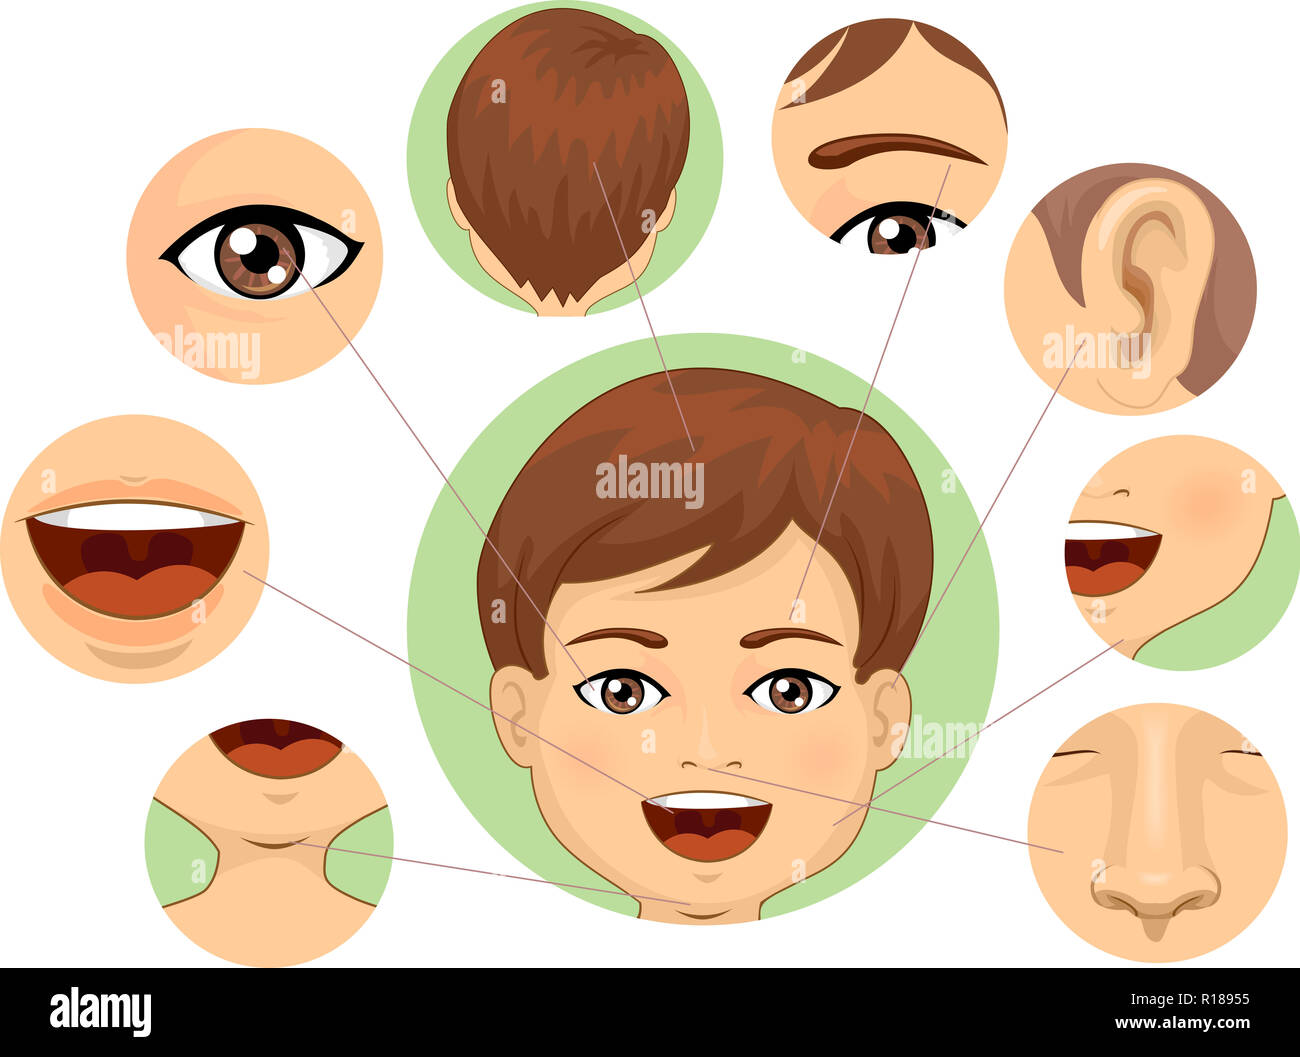 Illustration Of A Kid Boy With Different Parts Of The Face